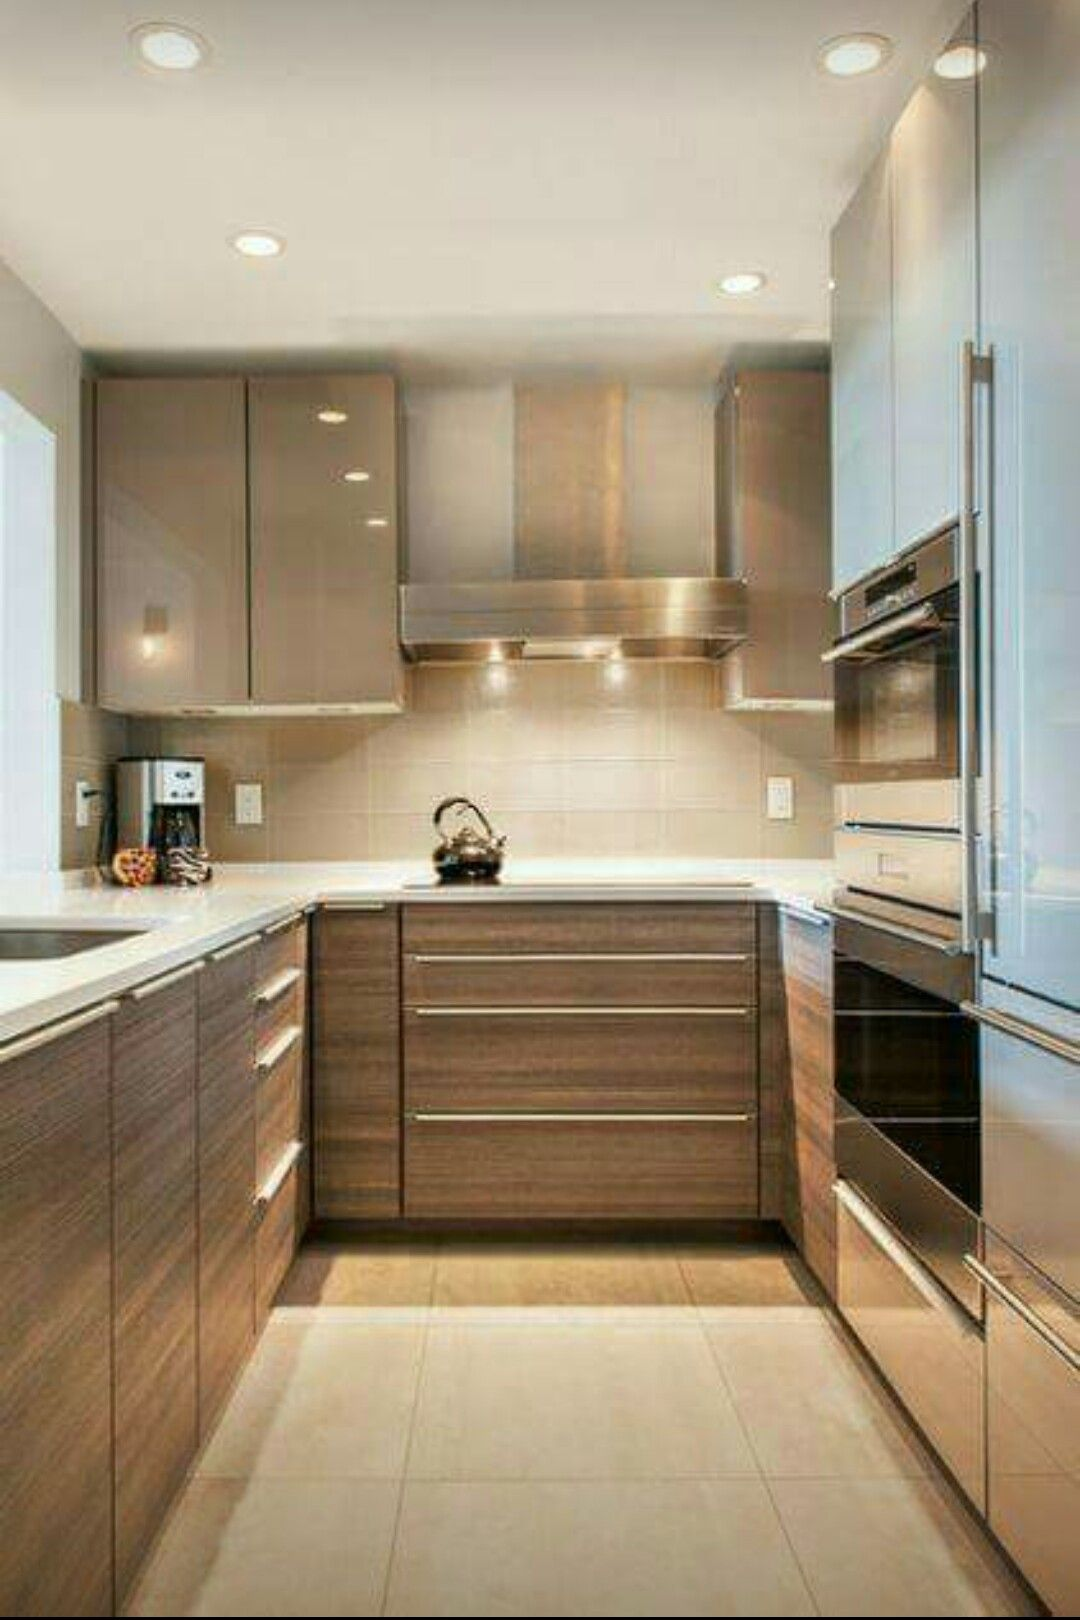 Nice Cabinet Style Kitchen Design Modern Small Small Modern Kitchens Kitchen Design Small